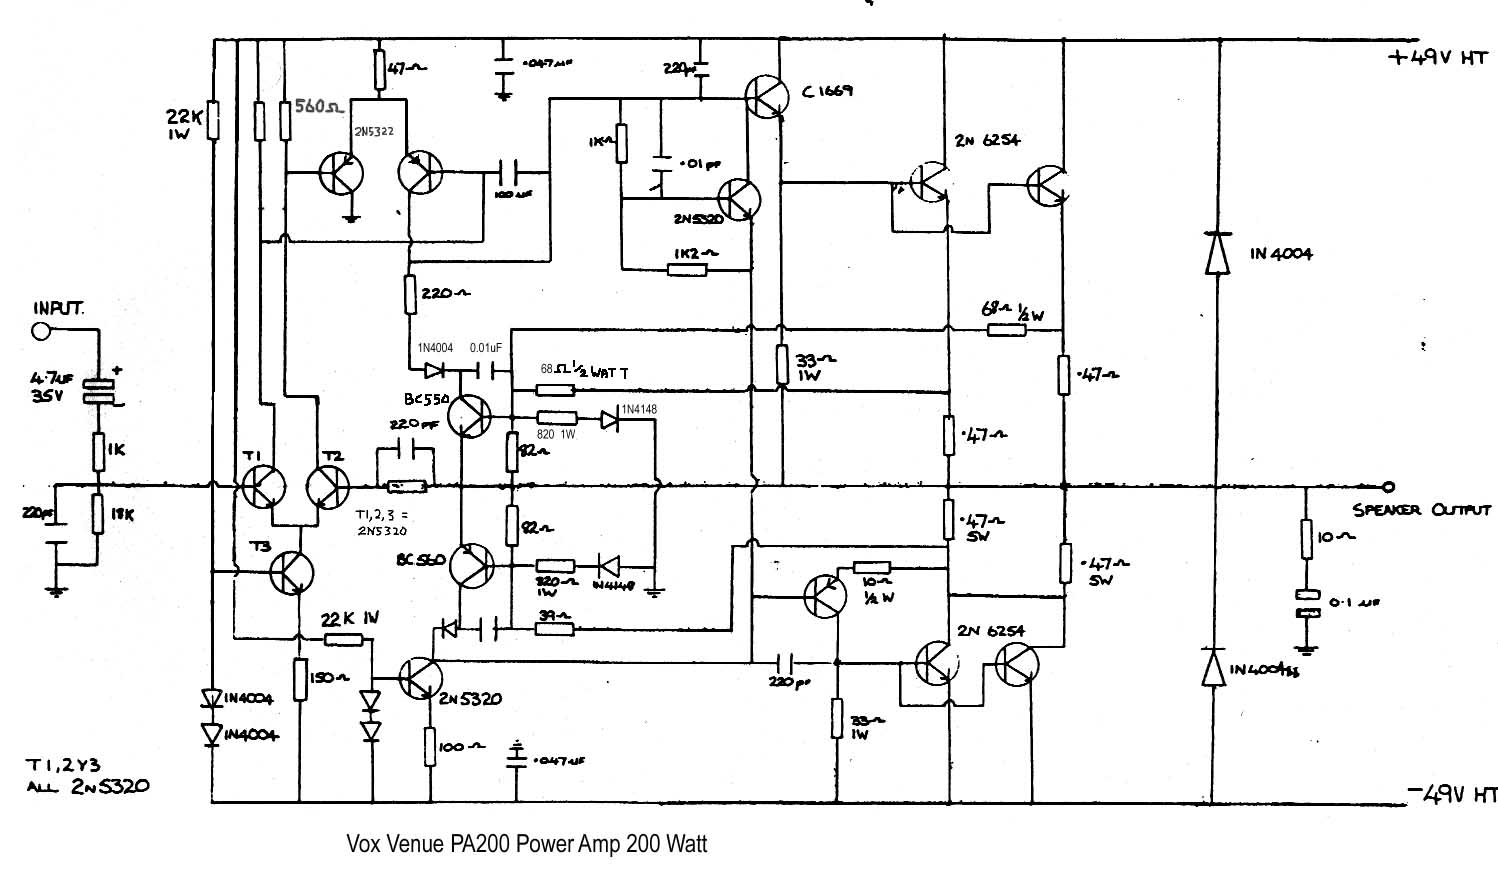 450 Watt Power Amplifier Schematic Wire Center Fet Op Amp Microphone Mixer Circuit Diagram Tradeoficcom Vox Vintage Diagrams Rh Korguk Com High Circuits Schematics